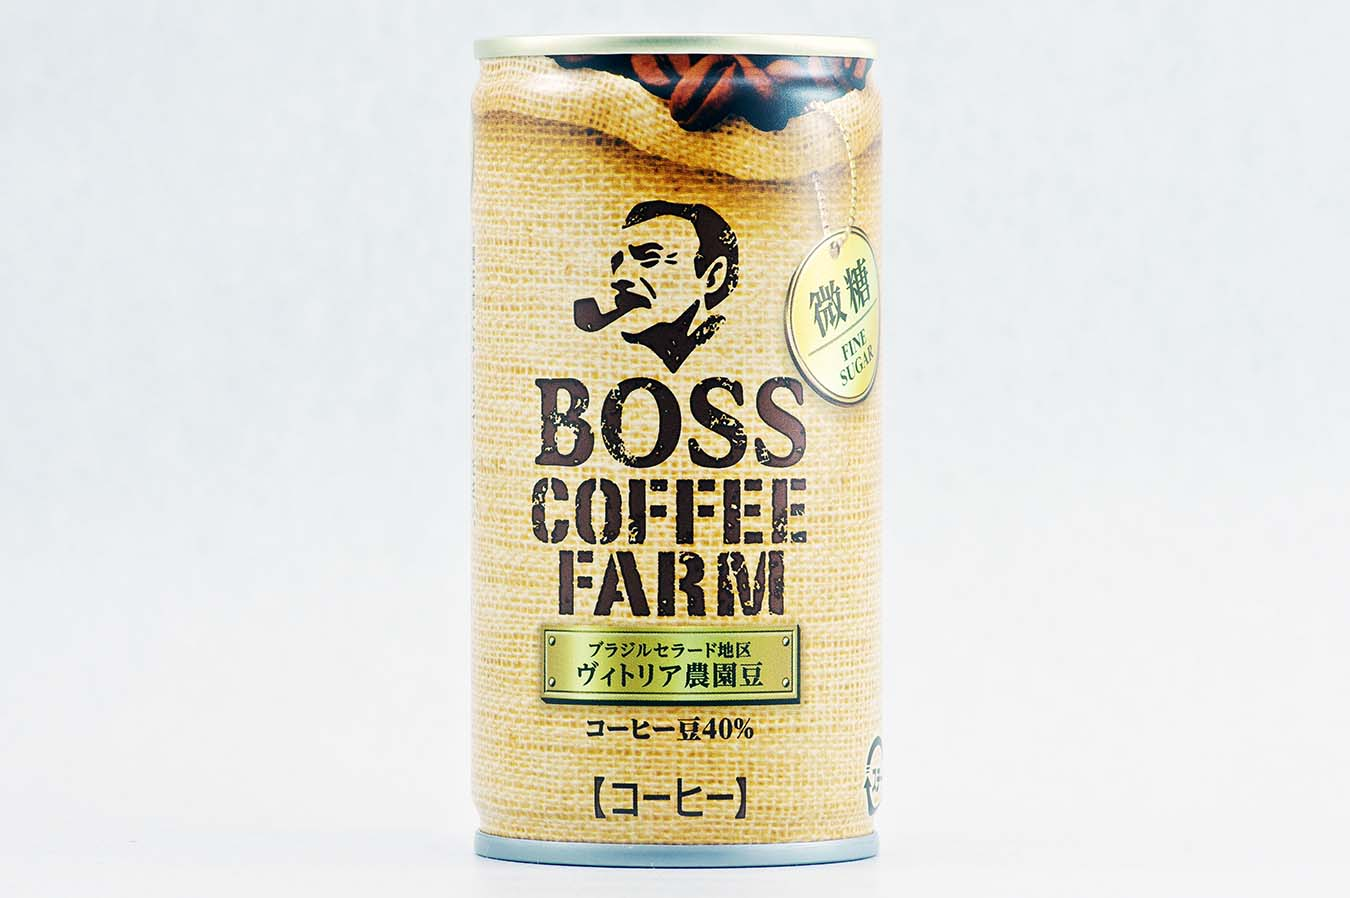 BOSS COFFEE FARM 微糖 2015年6月